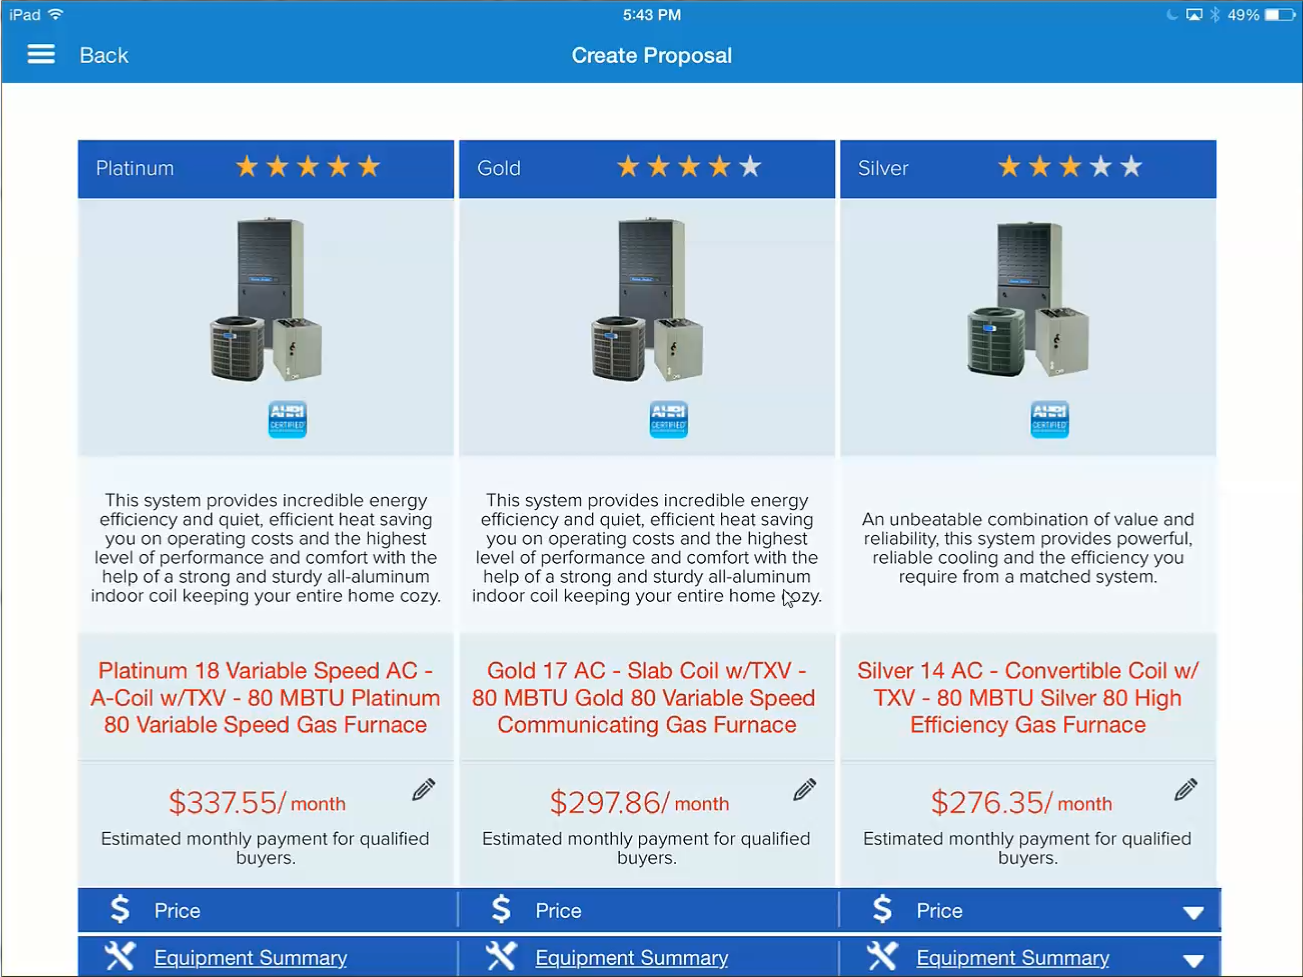 HVAC Equipment Proposals Ipad app